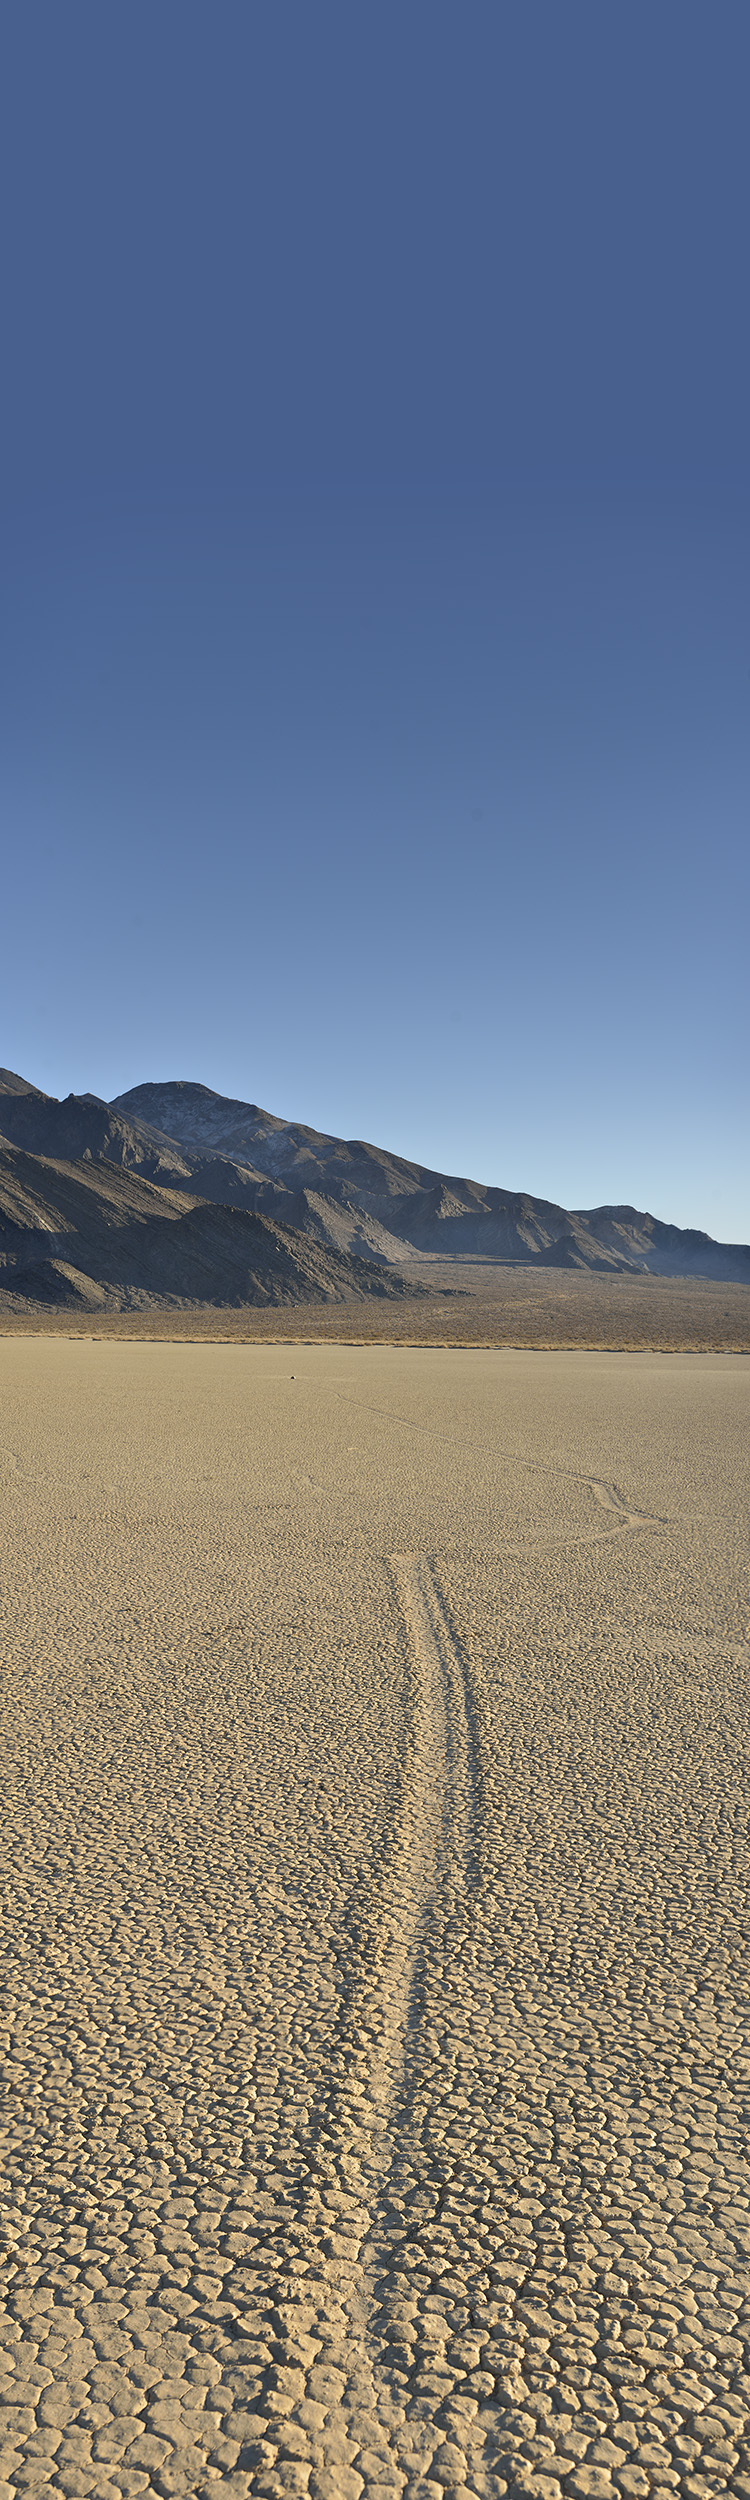 Sailing Stones, Death Valley NP